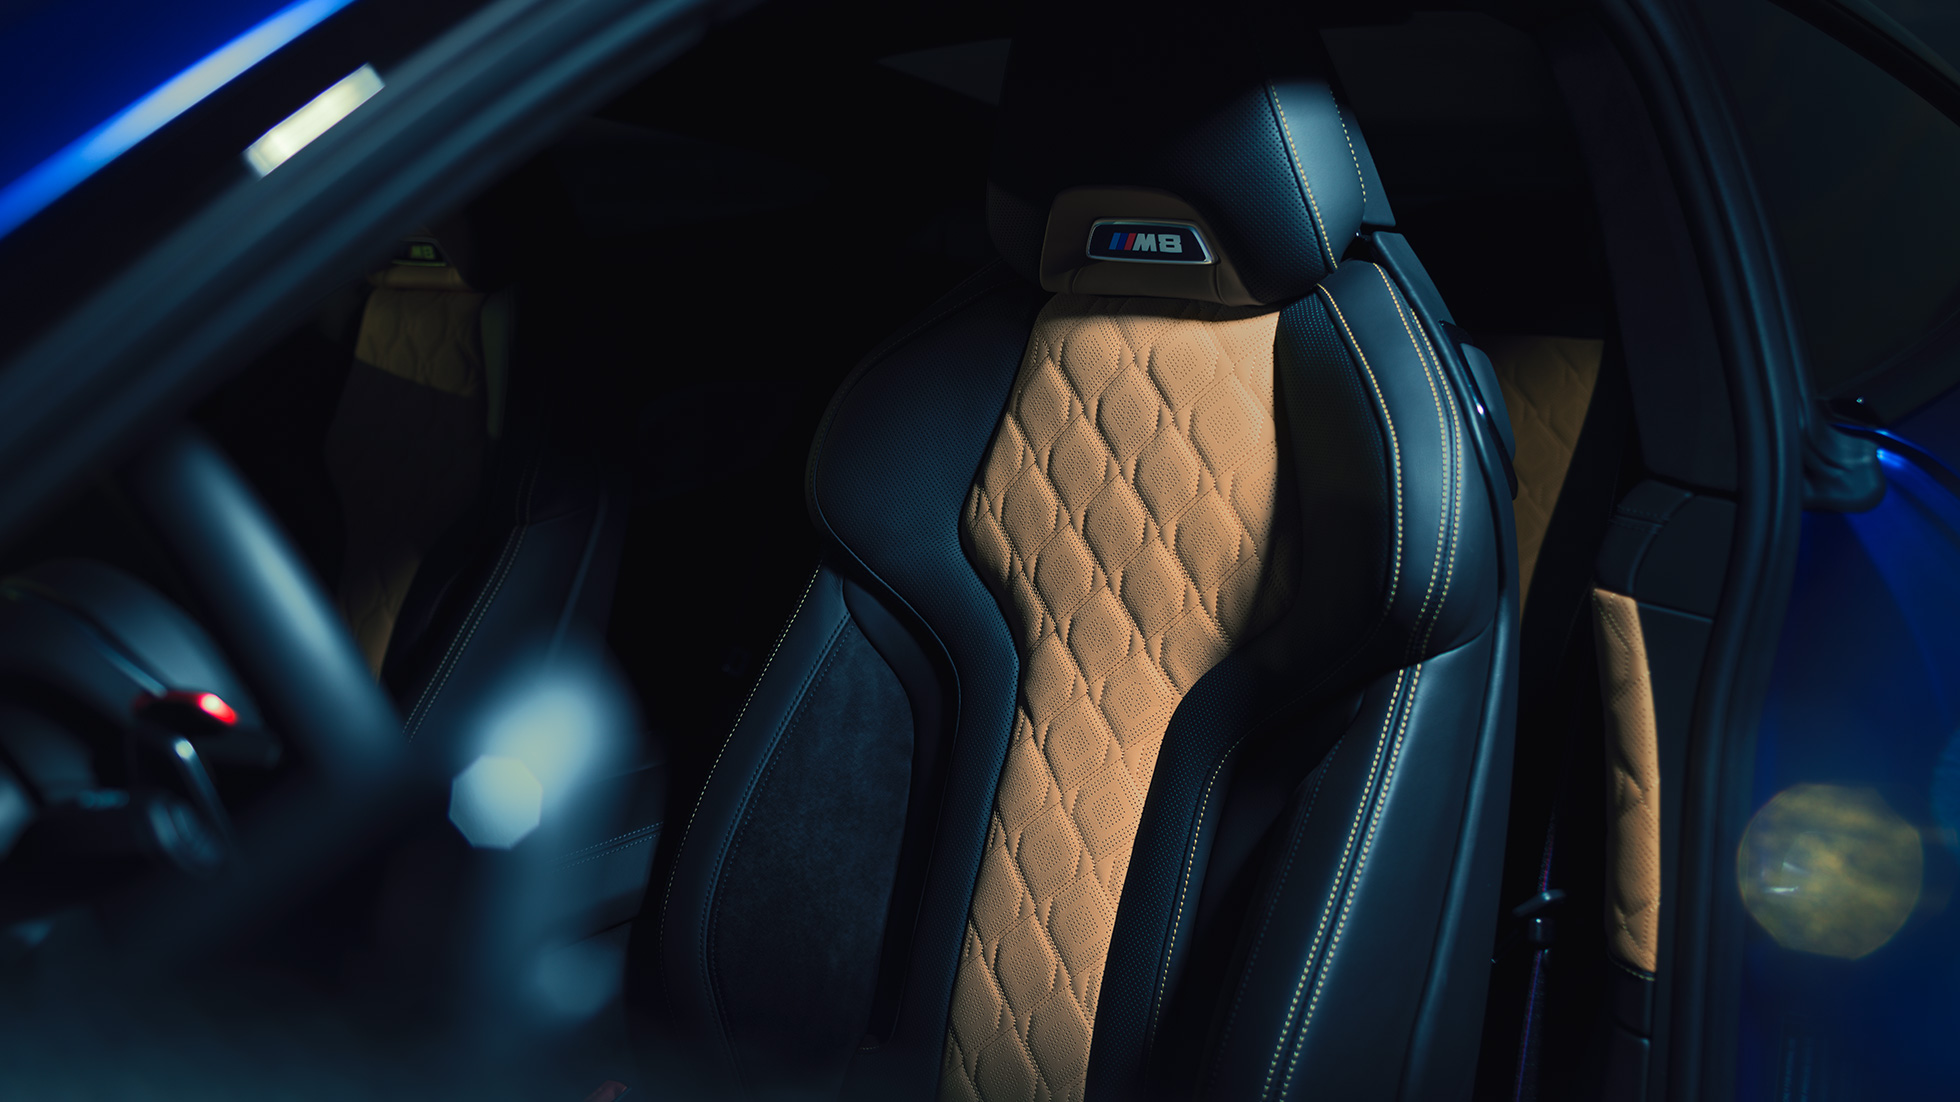 BMW M8 Competition Coupé, M Sport seat with M8 badge and upholstery in full leather 'Merino' Black with contrast Midrand Beige.